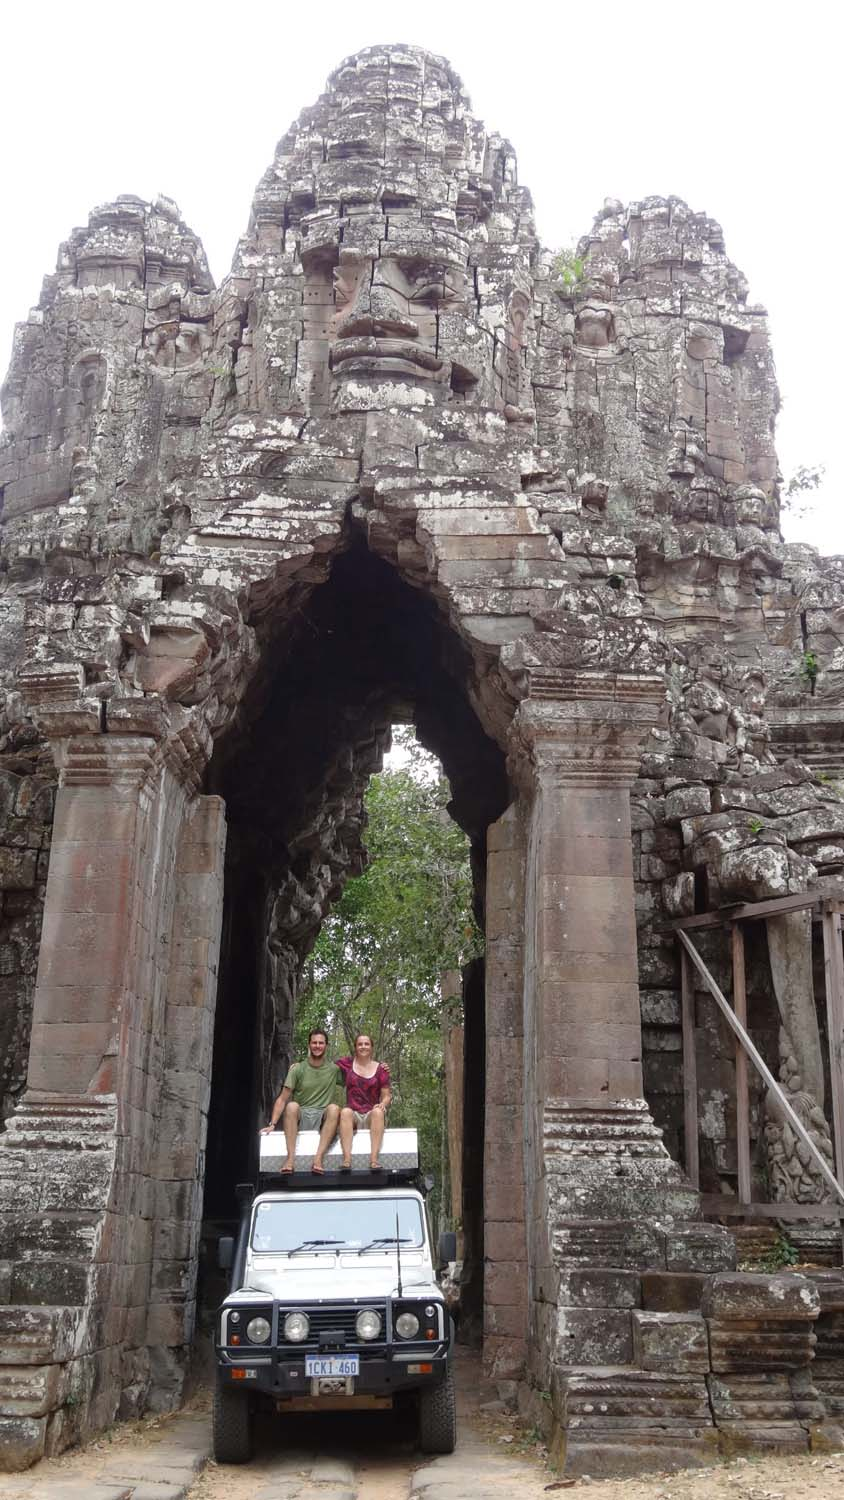 East gate at Angkor Thom with Lara